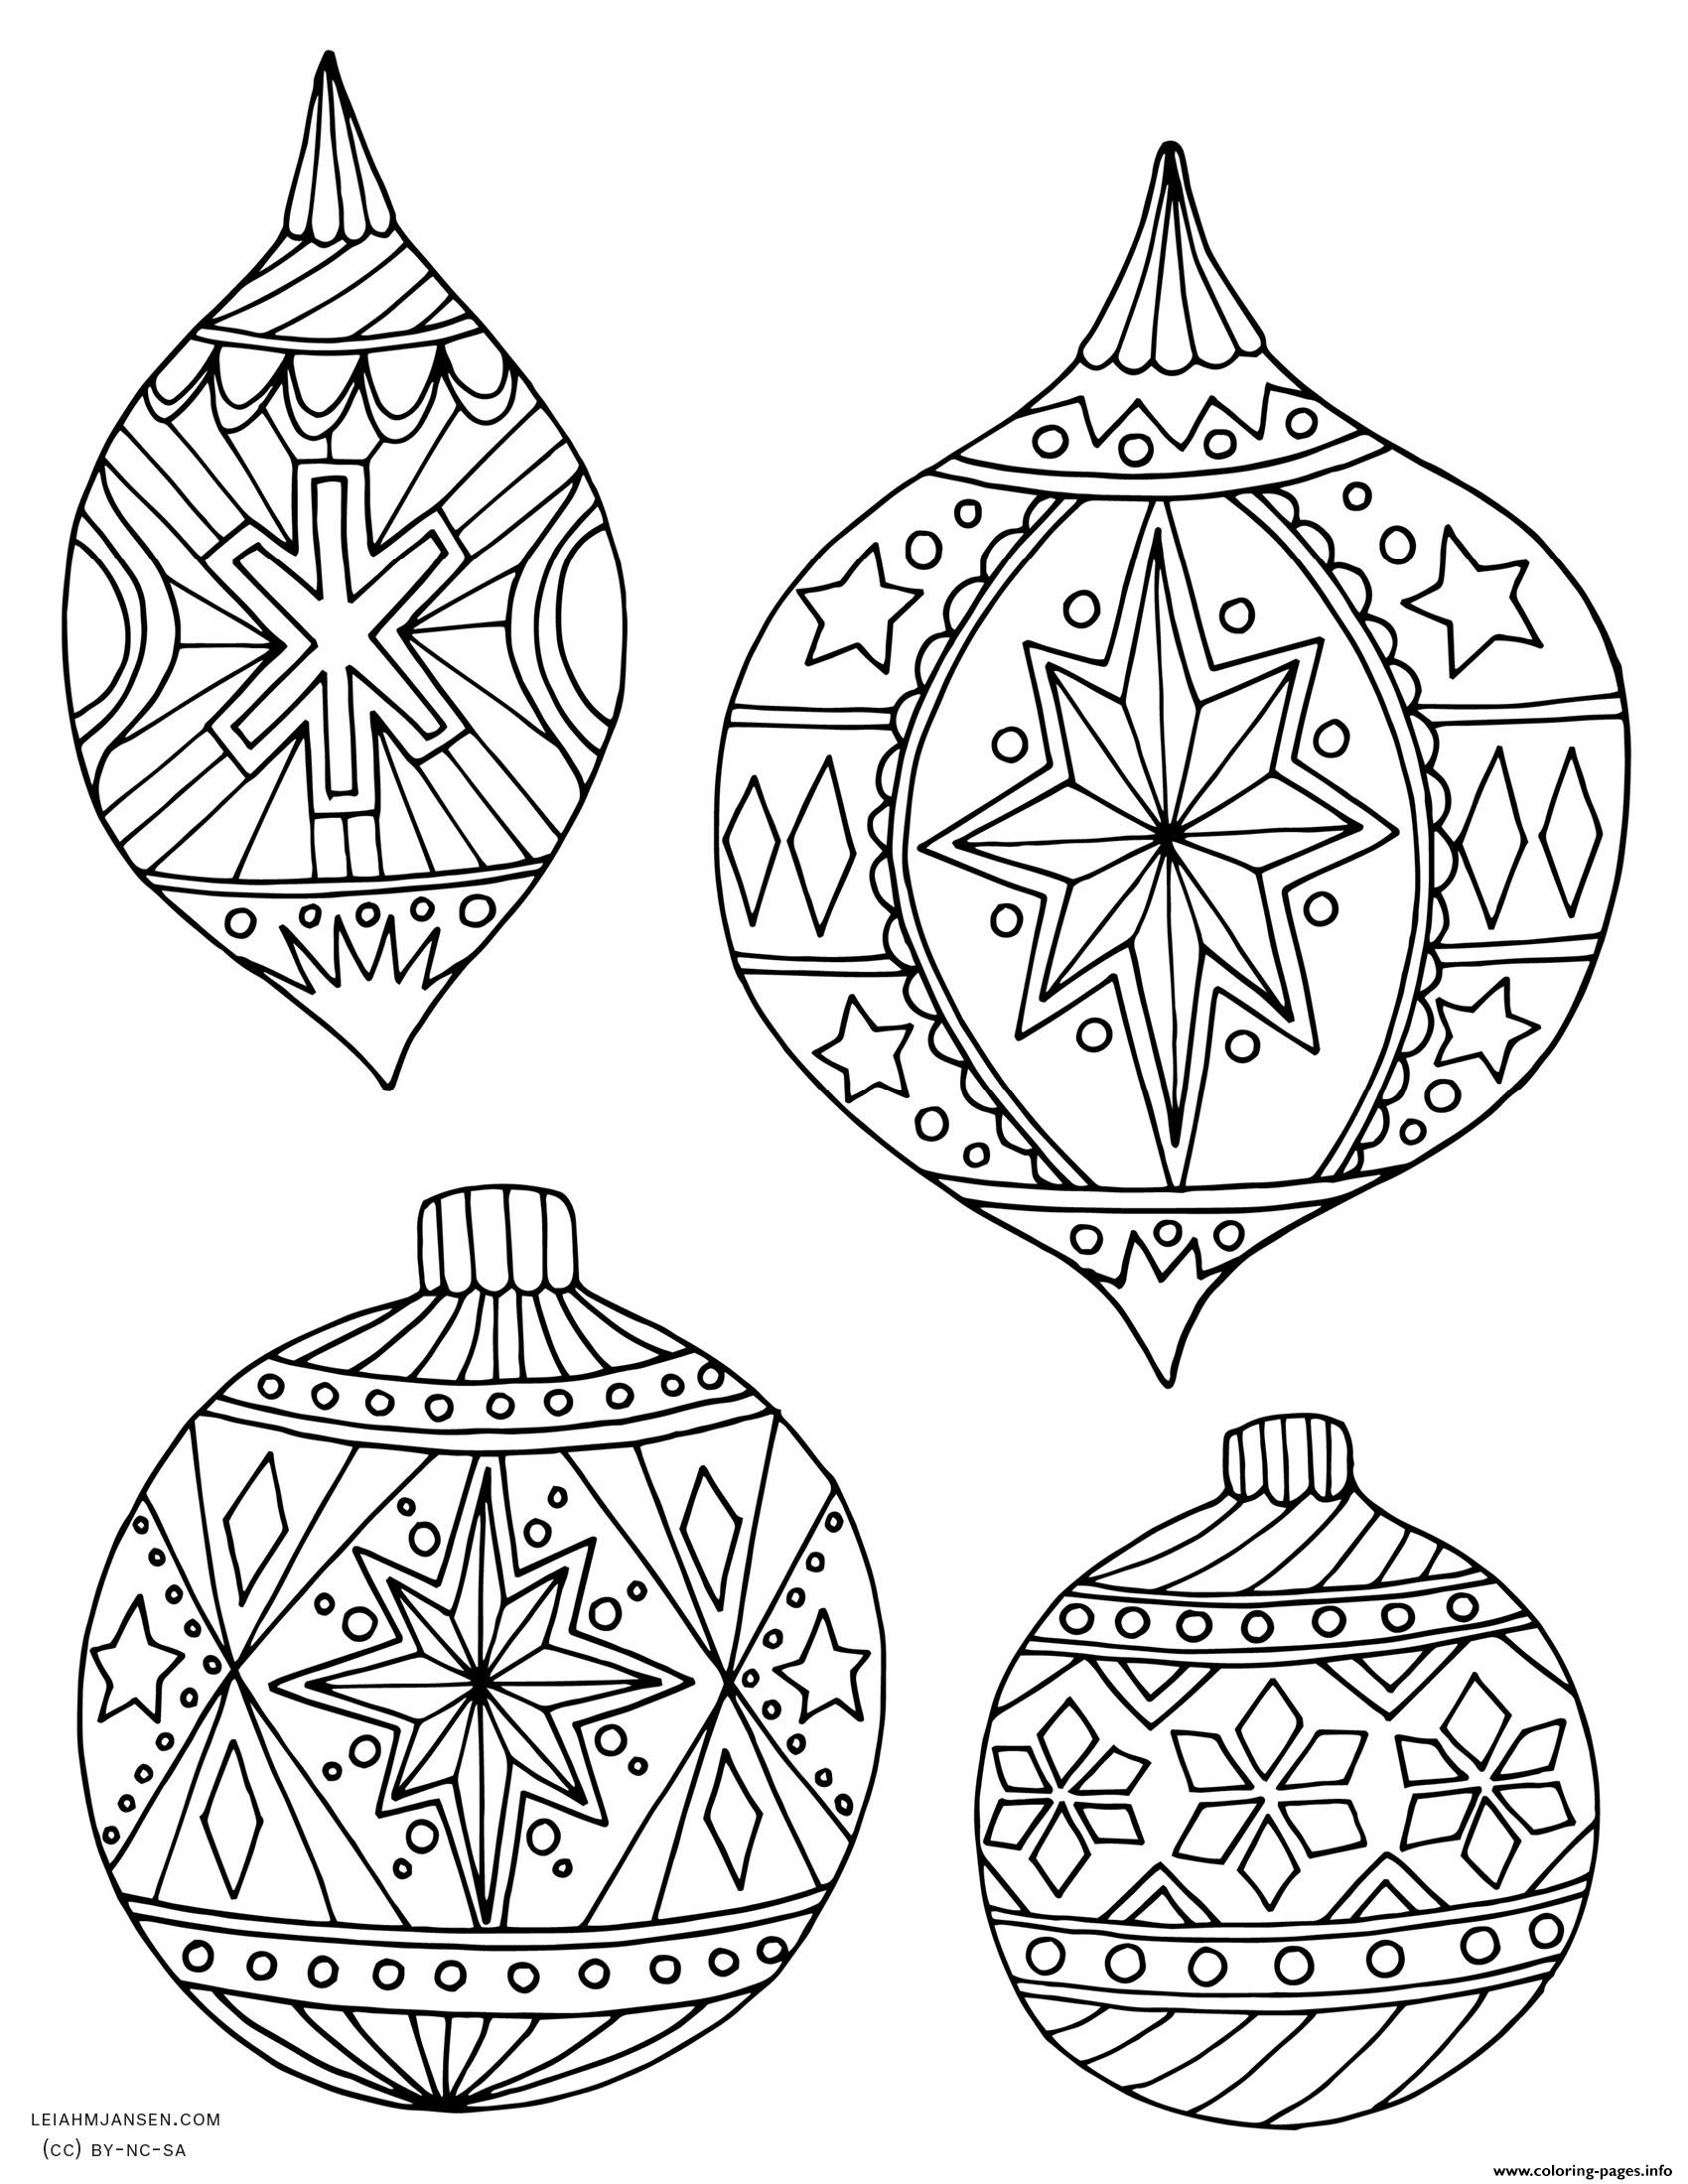 Adult christmas holiday ornaments coloring pages printable for Adult christmas coloring pages